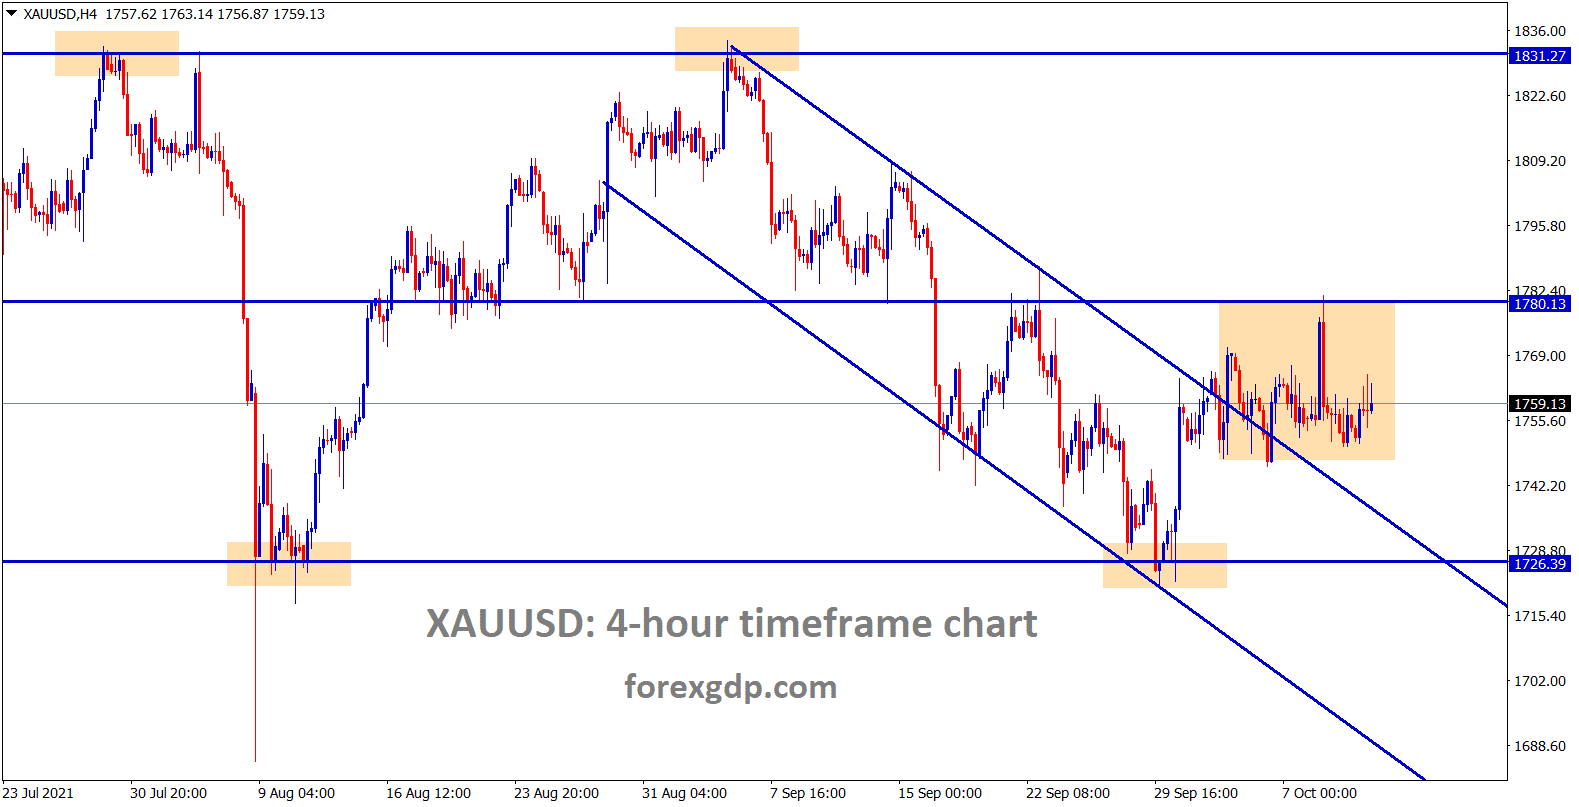 Gold is still consolidating after breaking the top lower high of the descending channel.